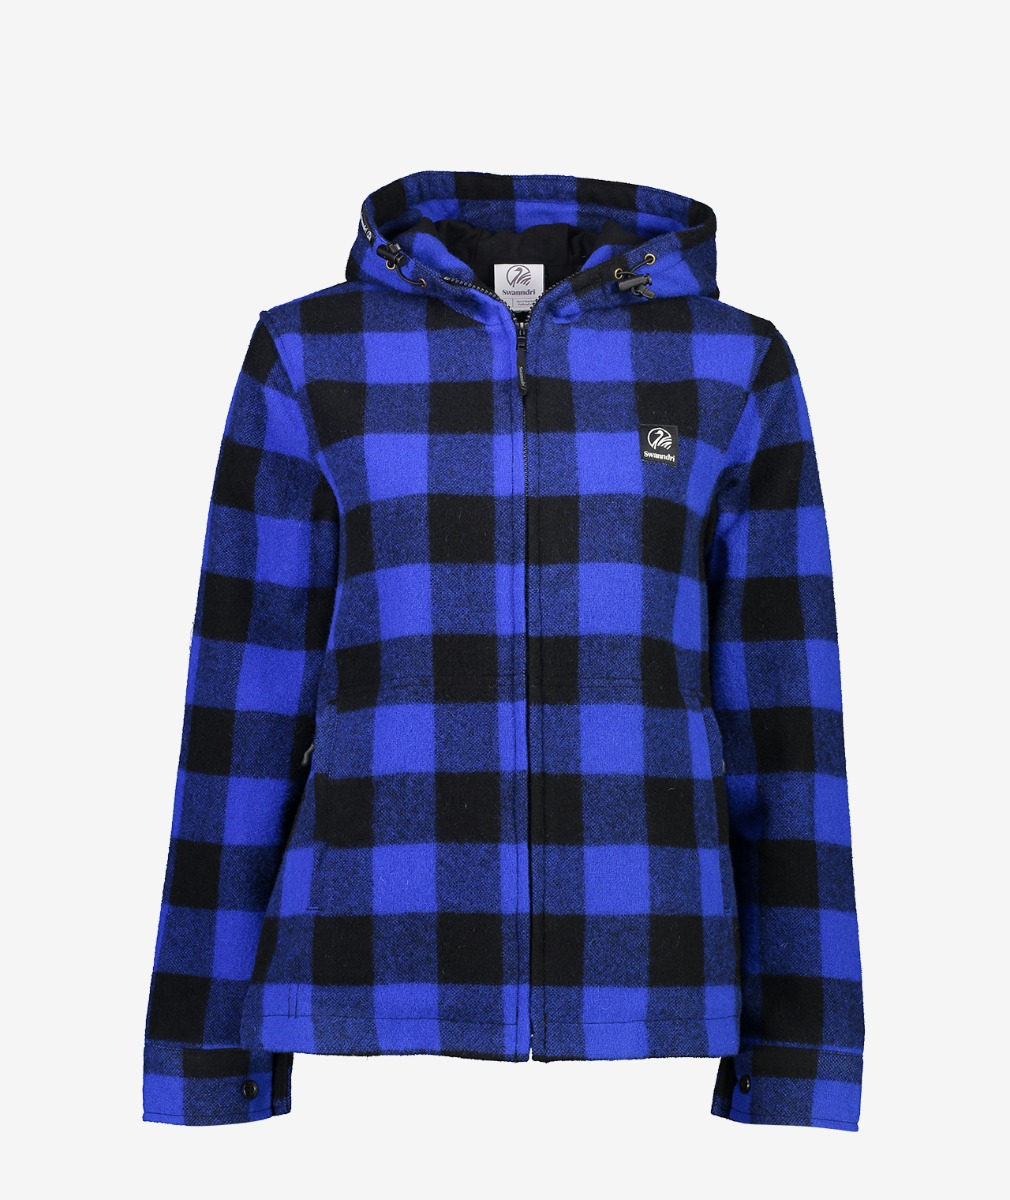 Swanndri Women's Portland Hoody in Blue/Black Check